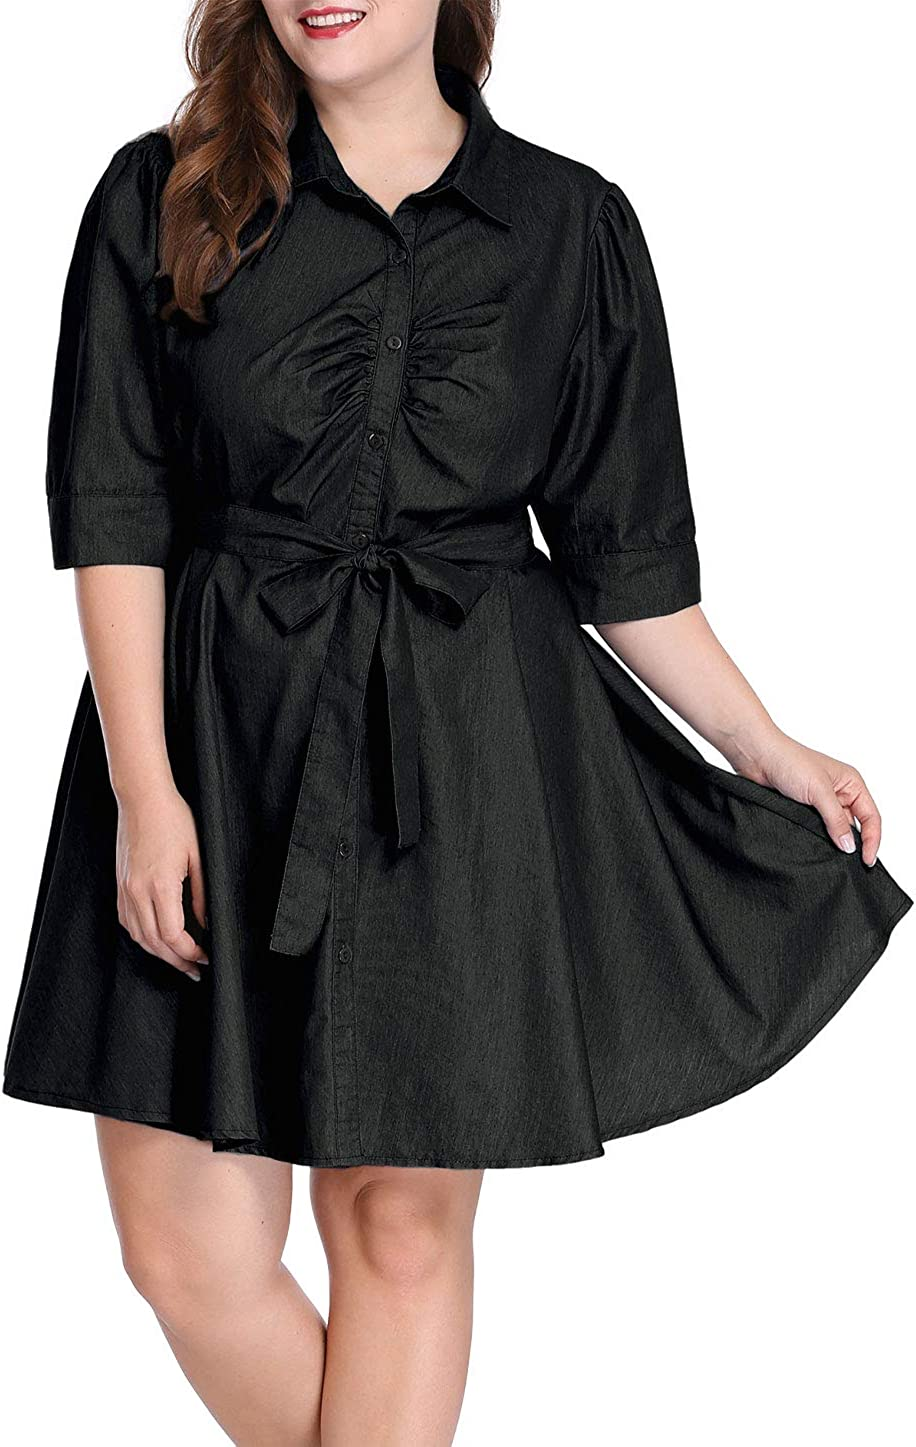 uxcell Womens Plus Size Roll Up Sleeves Above Knee Belted Denim Shirt Dress